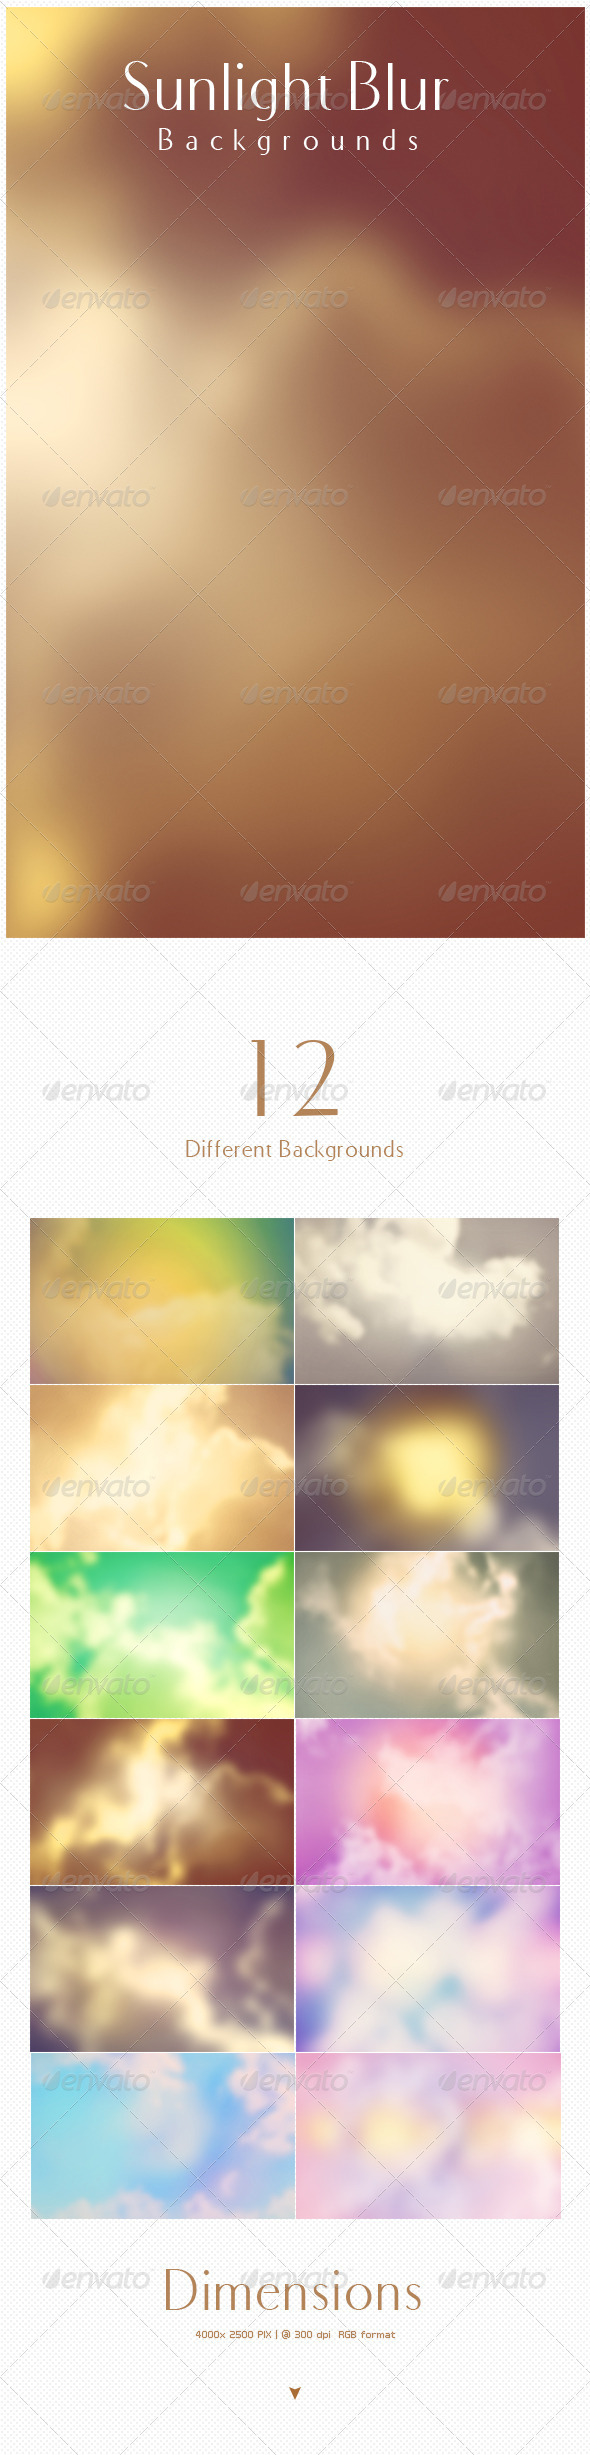 GraphicRiver Sunlight Blur Backgrounds 5493427